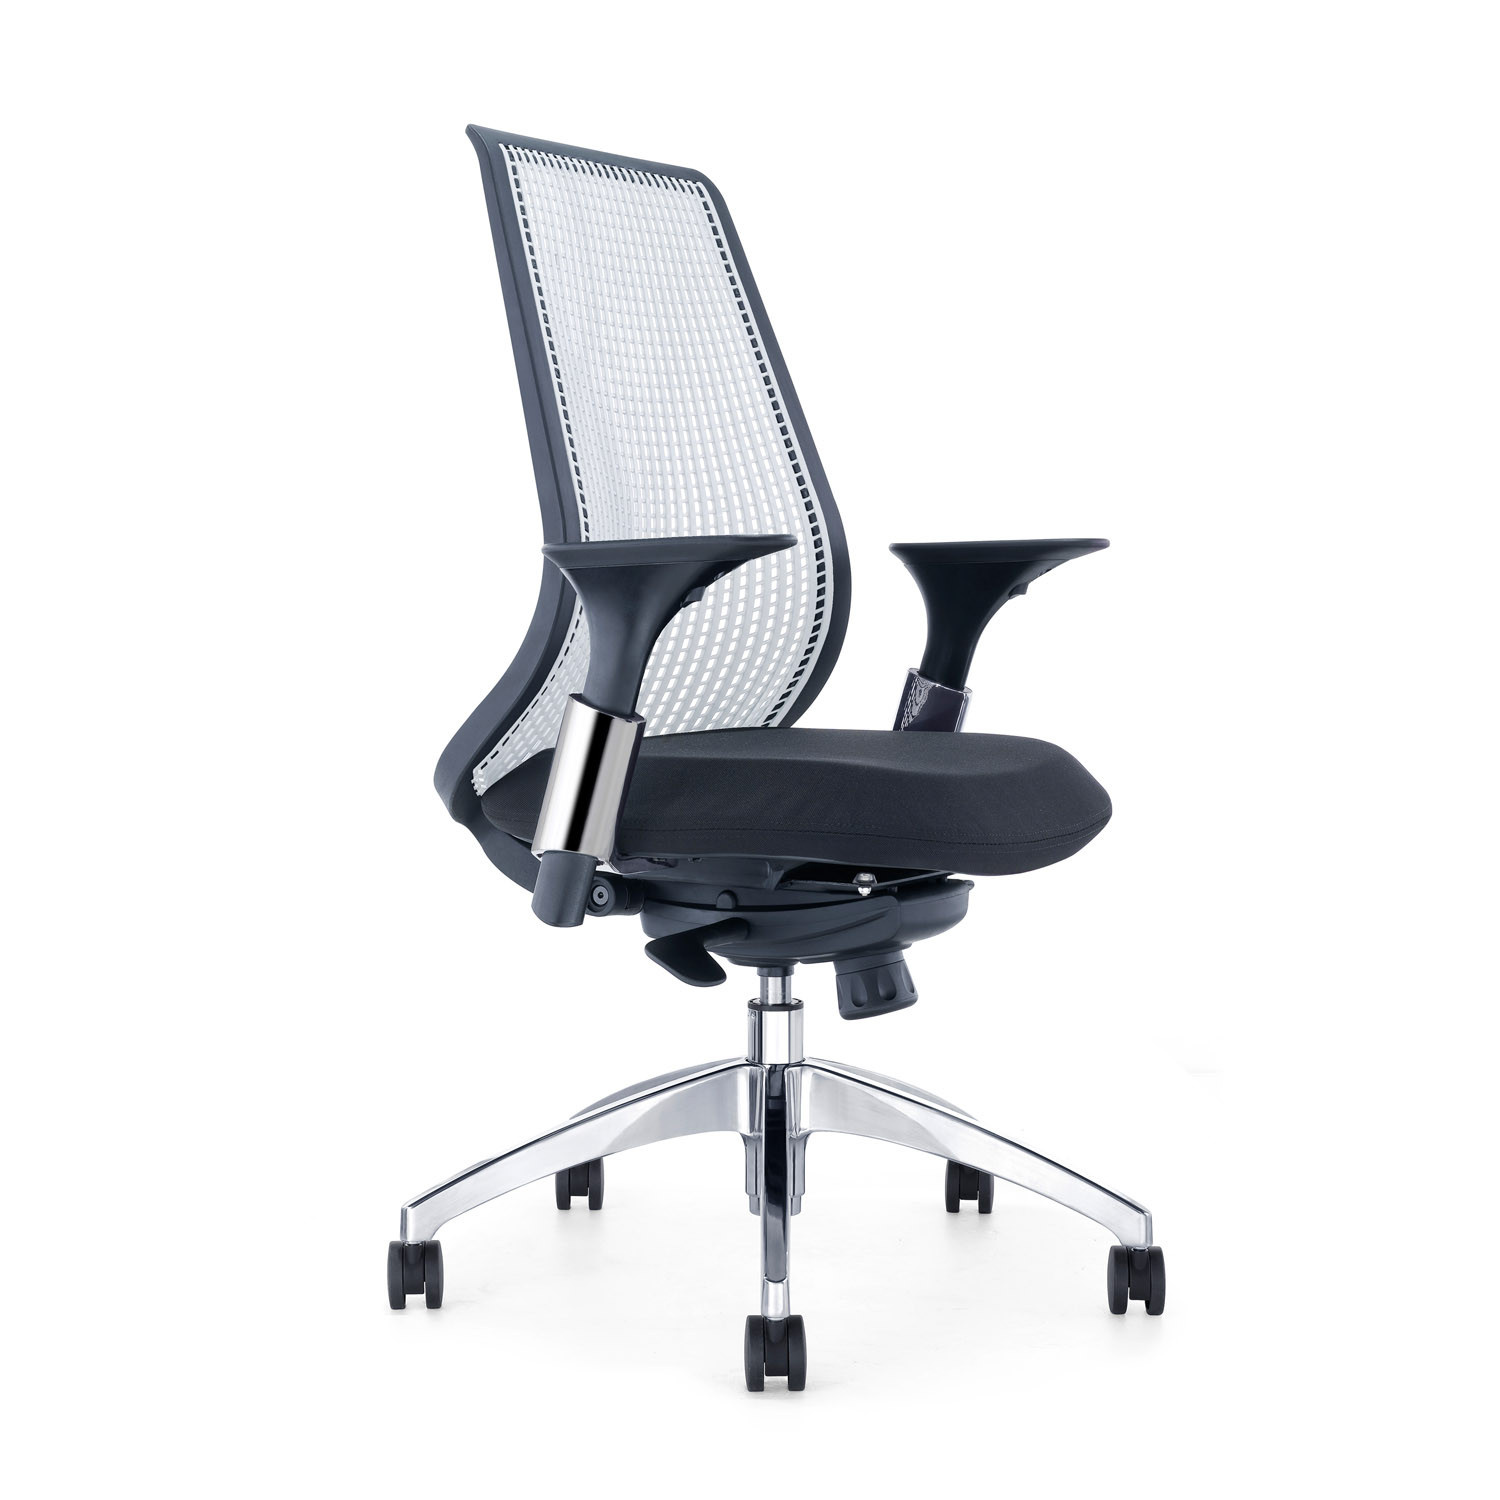 OTS Ergonomic Task Chair